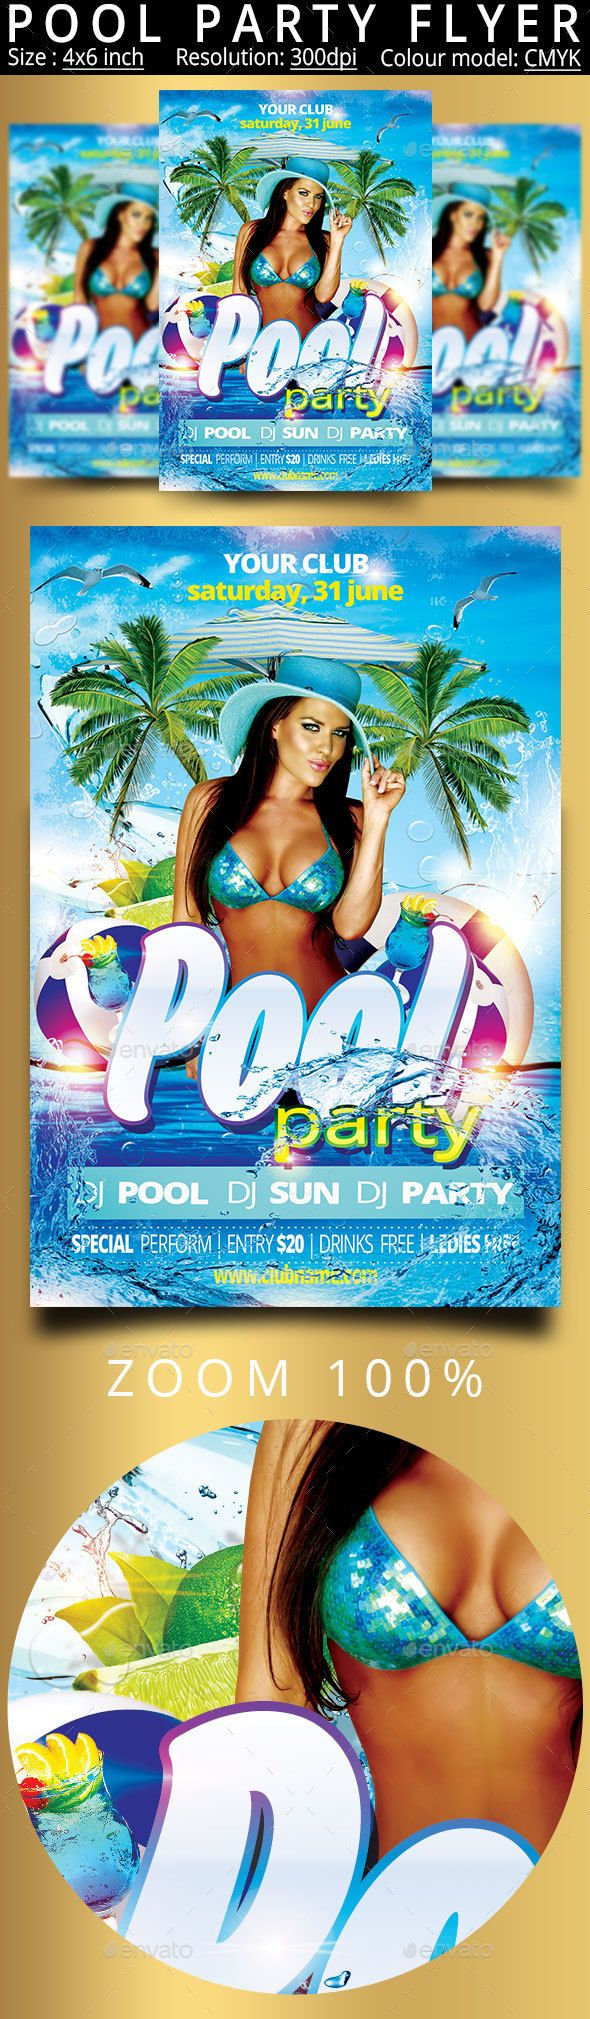 Pool Party Flyer Template PSD. Download here: http://graphicriver.net/item/pool-party-flyer/14918529?ref=ksioks